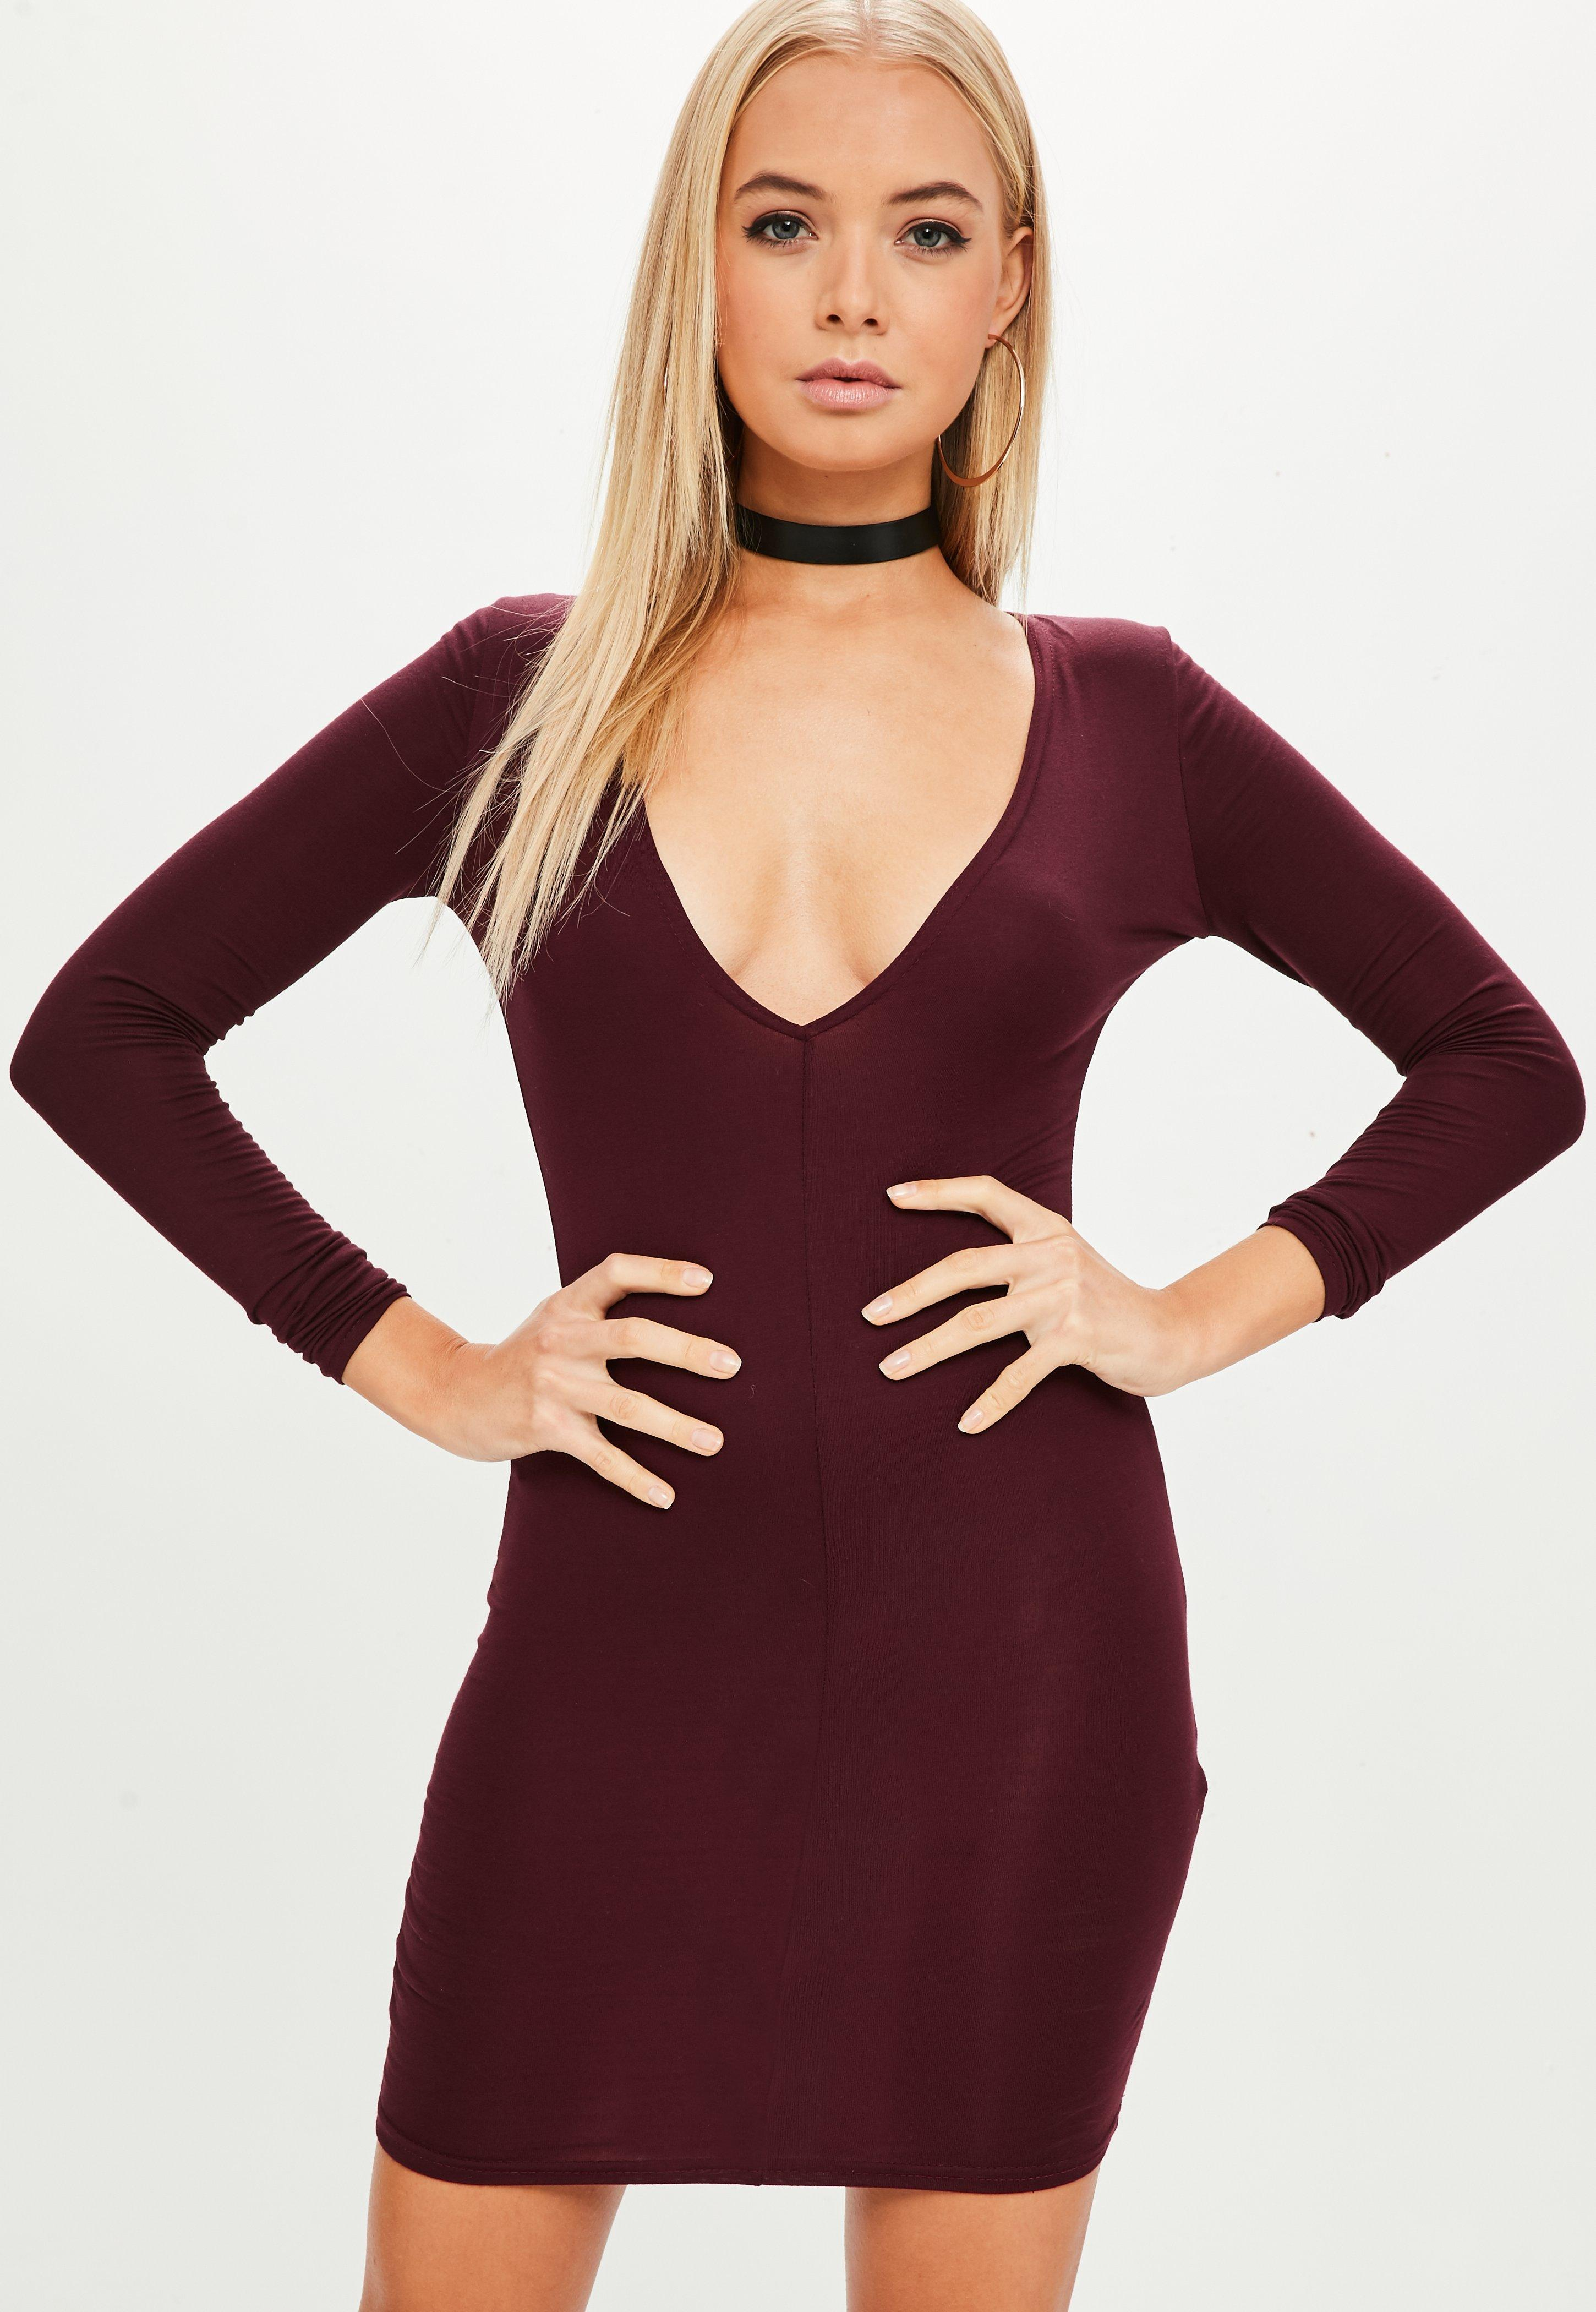 Plunge Burgundy Missguided In Bodycon Purple Lyst Dress vwnN8mOPy0